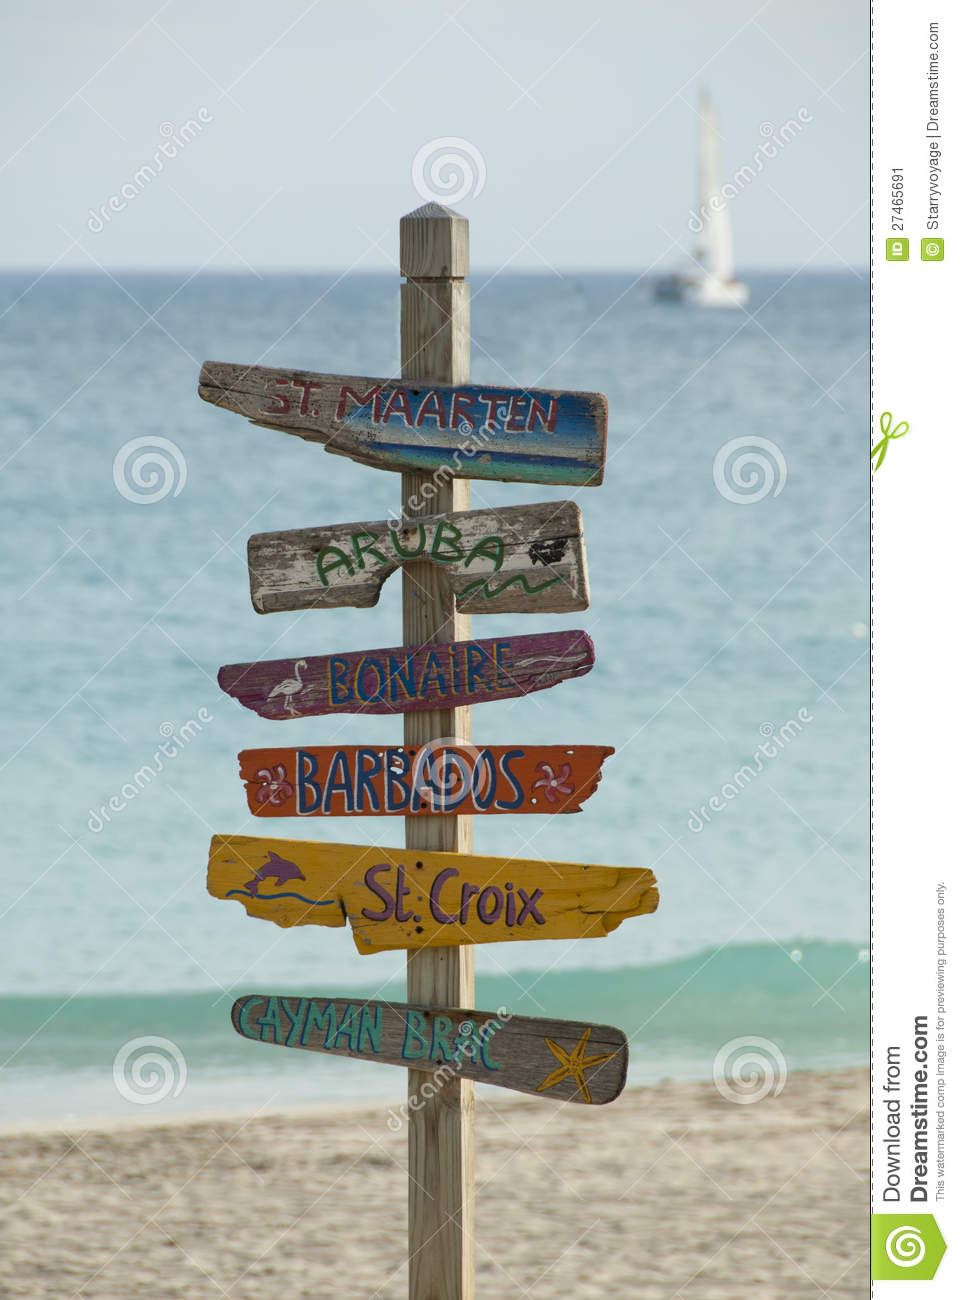 Caribbean Islands Sign Stock Image Image Of Sand Love